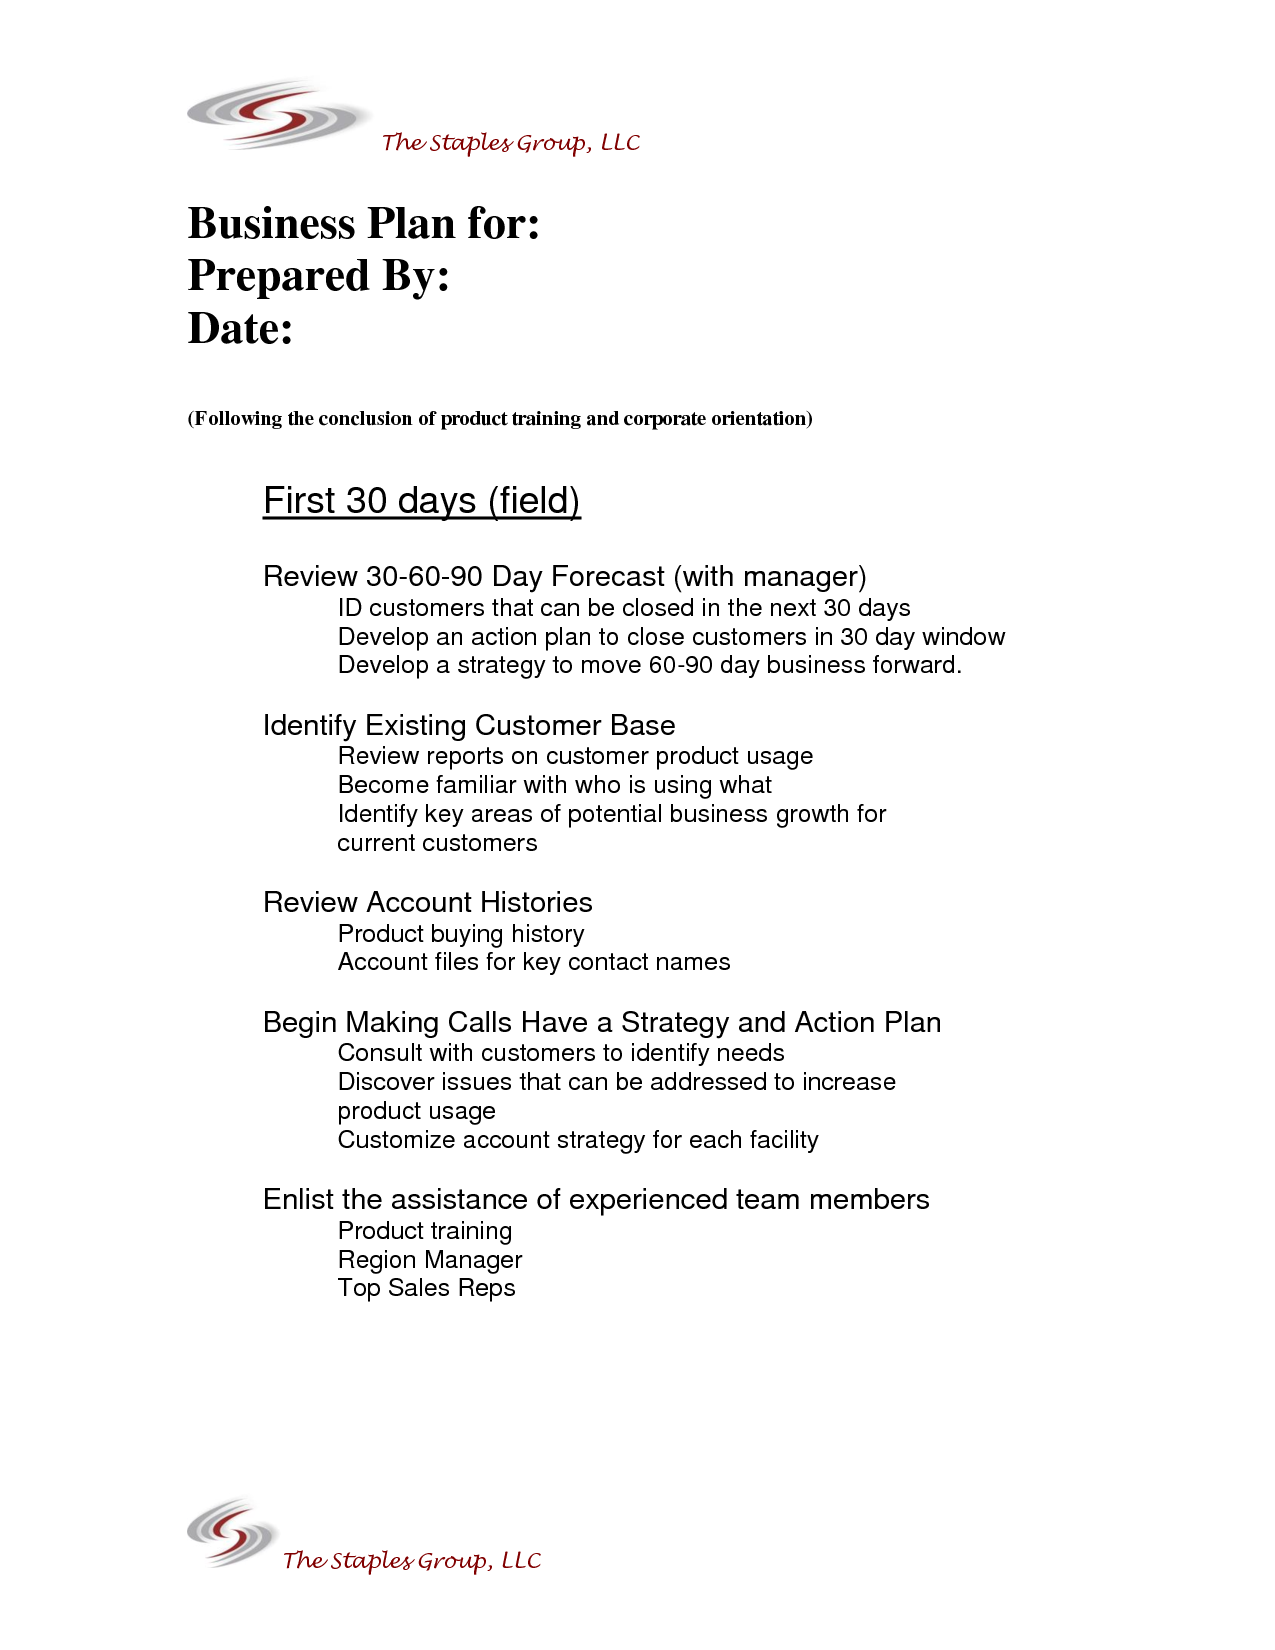 X KB Png Day Sales Plan Template UXfoMbU - Sales manager business plan template